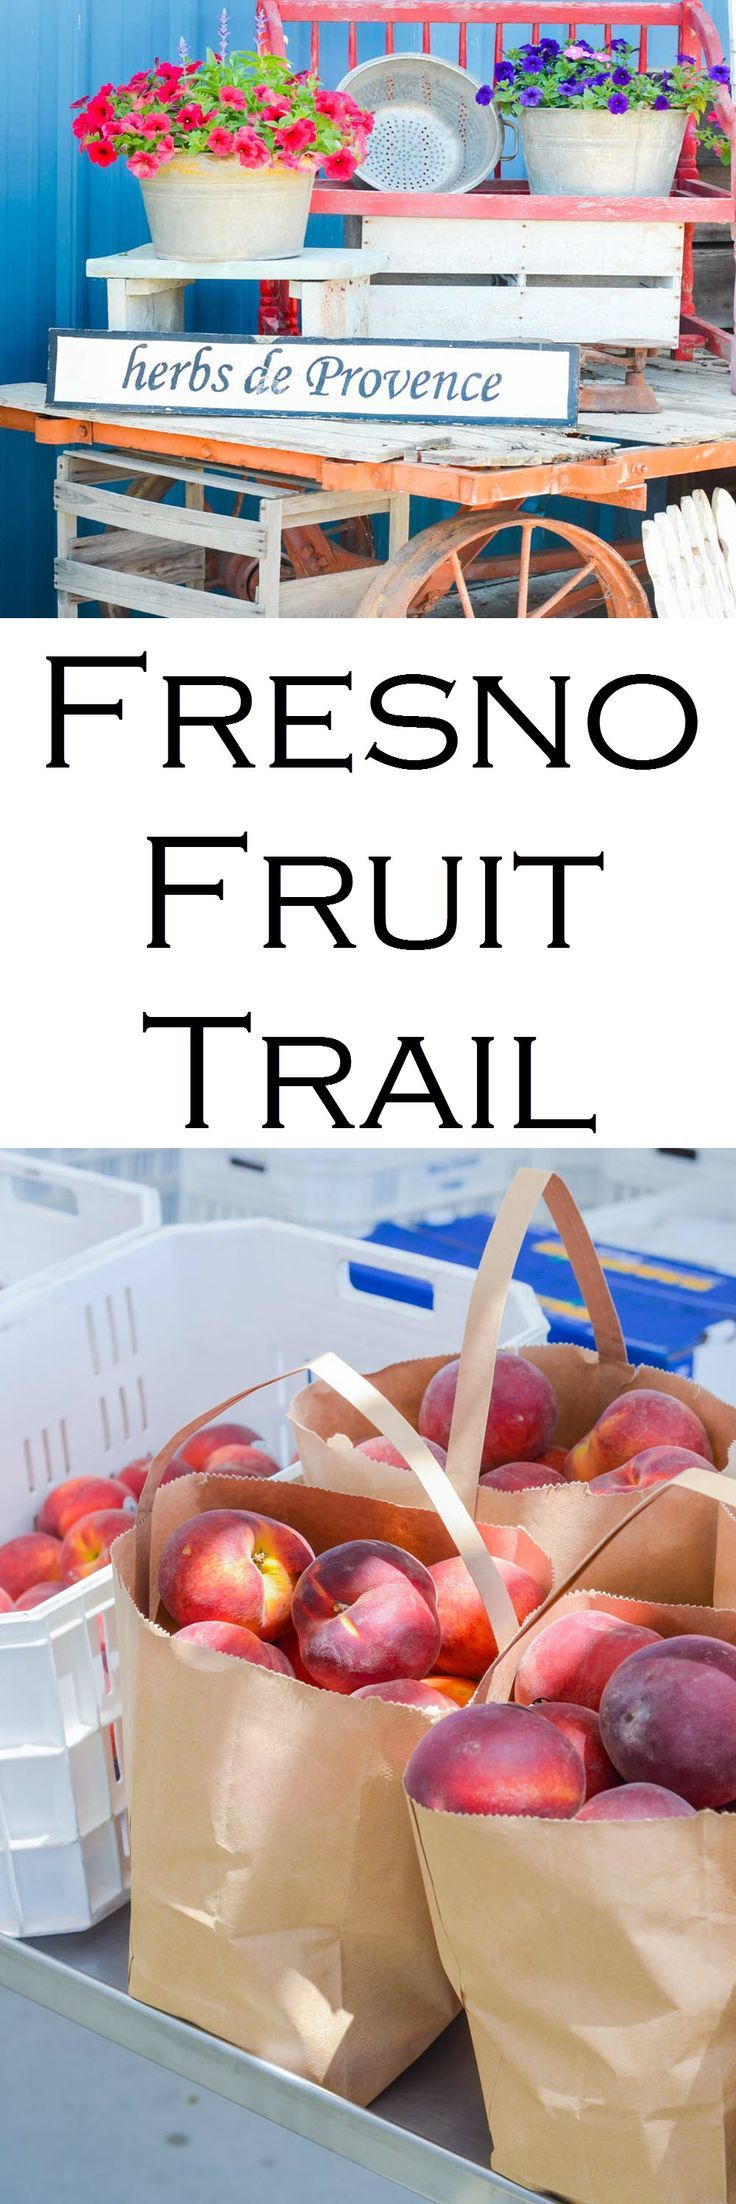 A guide to the Fresno Fruit Trail | Stop at farms and roadside stands for the freshest berries, stone fruits, and more.  Here's what to do in California Central Valley on Highway 99 | Luci's Morsels :: LA, California Travel Blogger